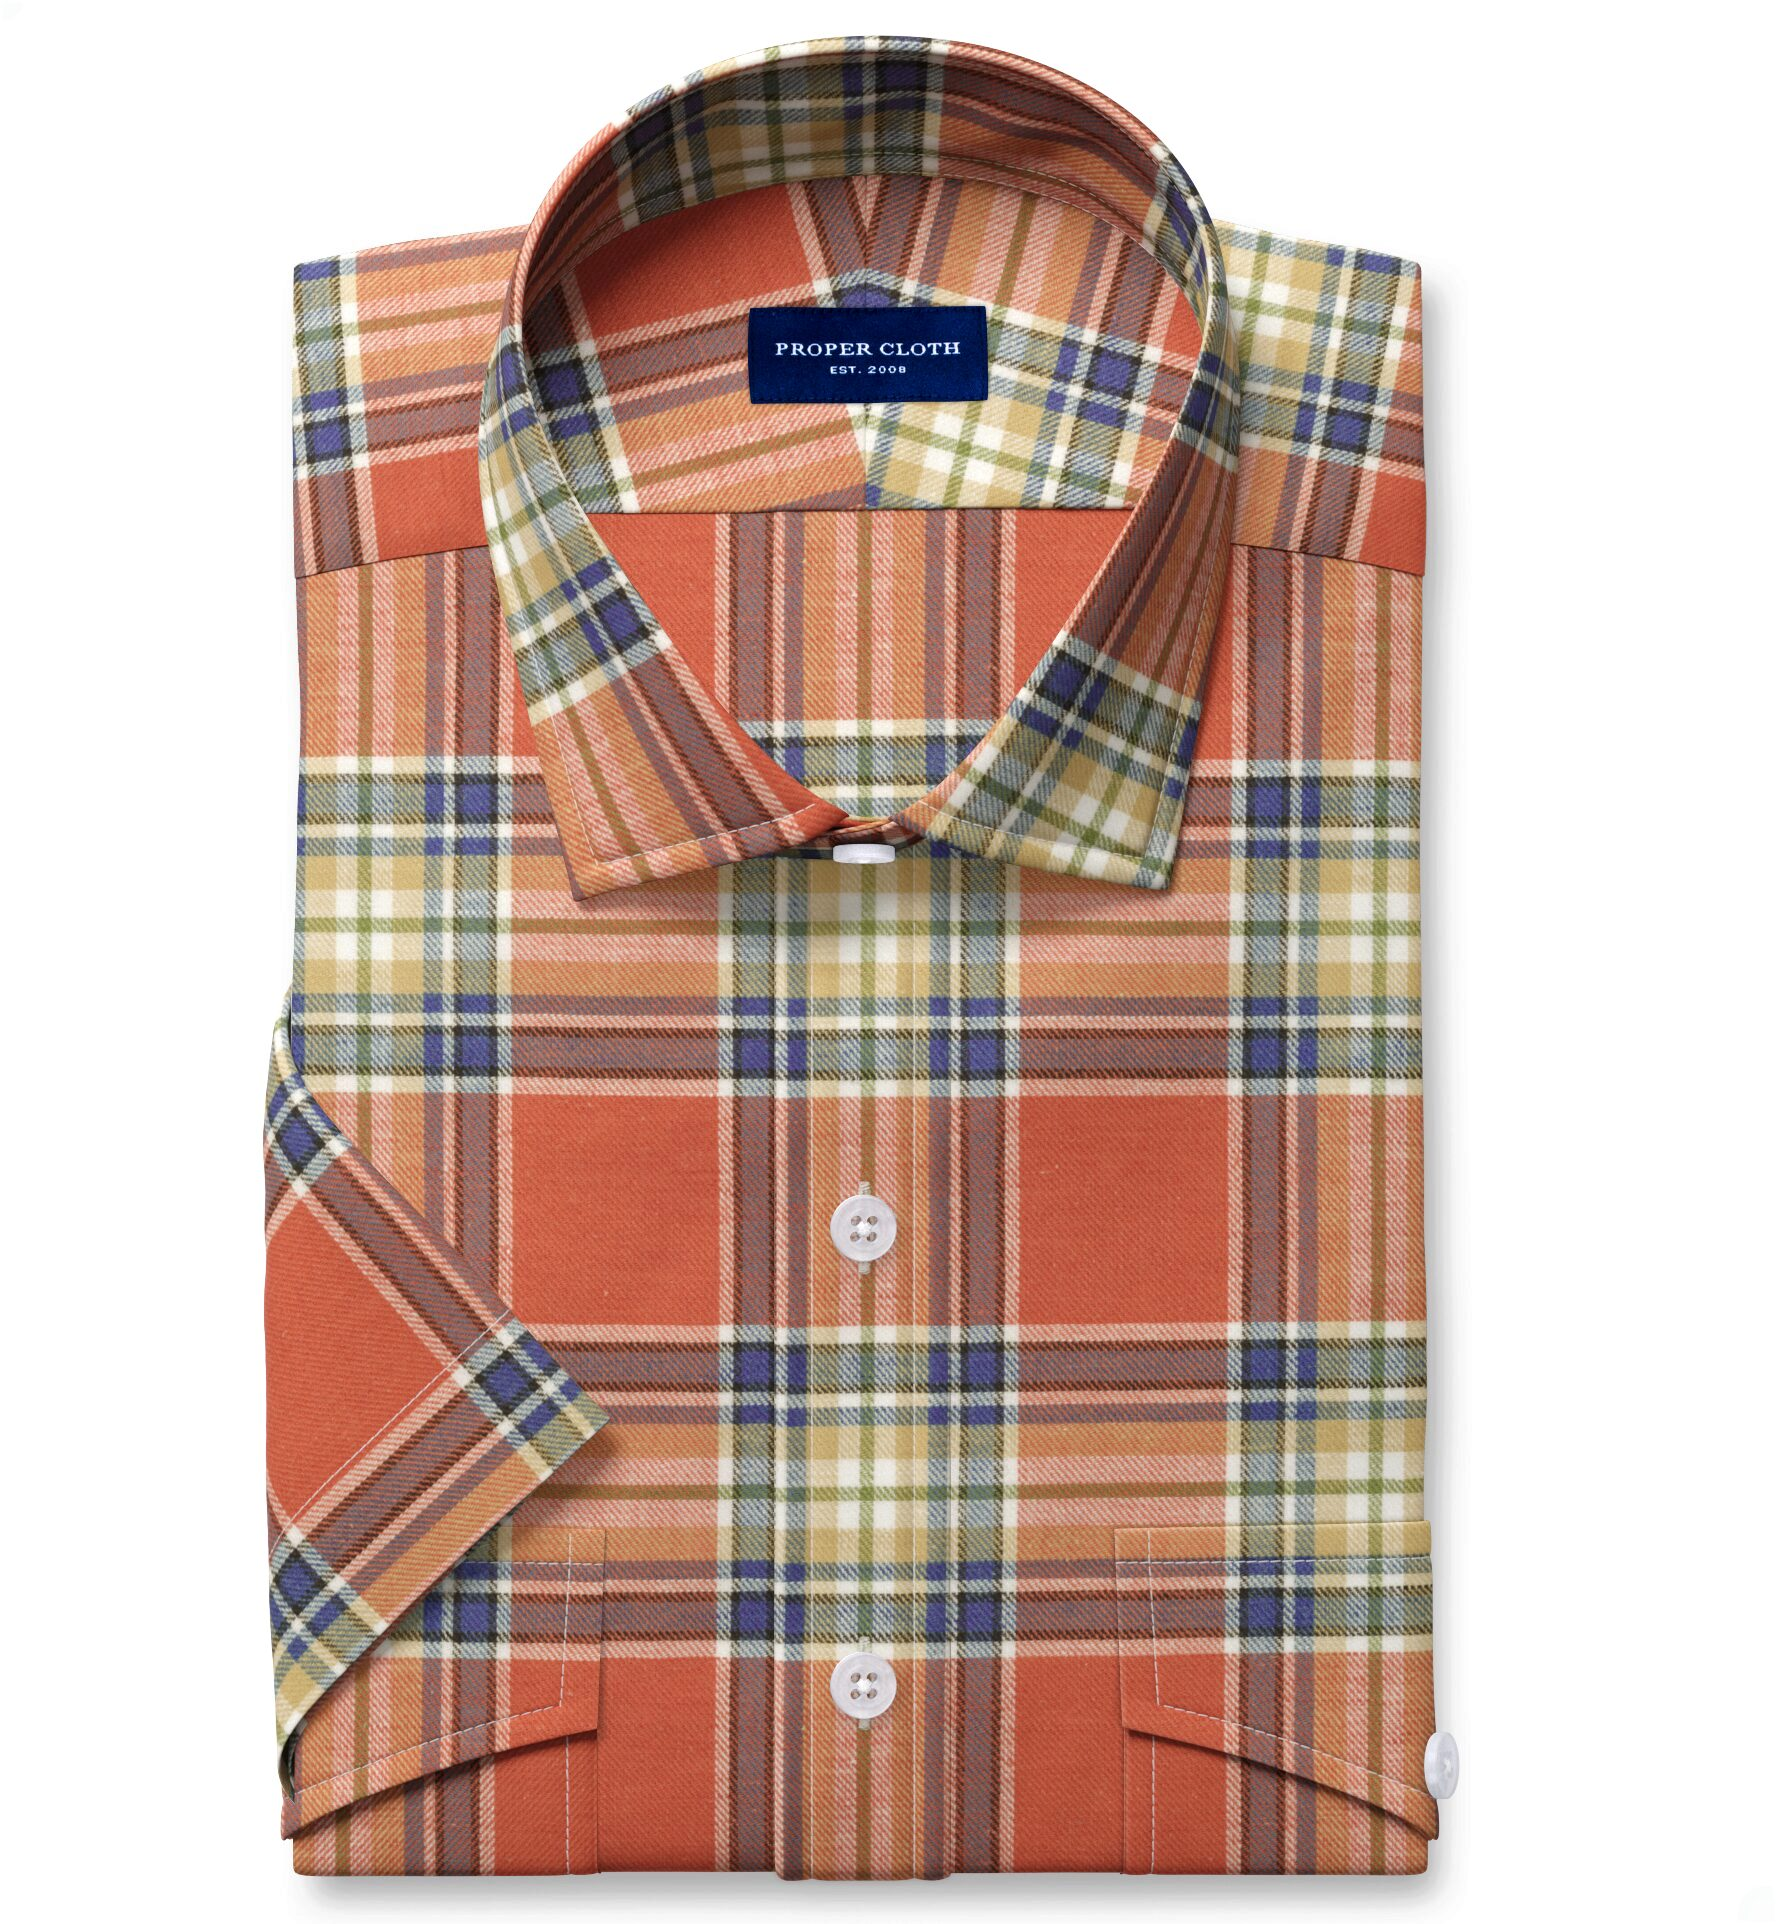 Japanese Tomato and Blue Cotton and Linen Plaid